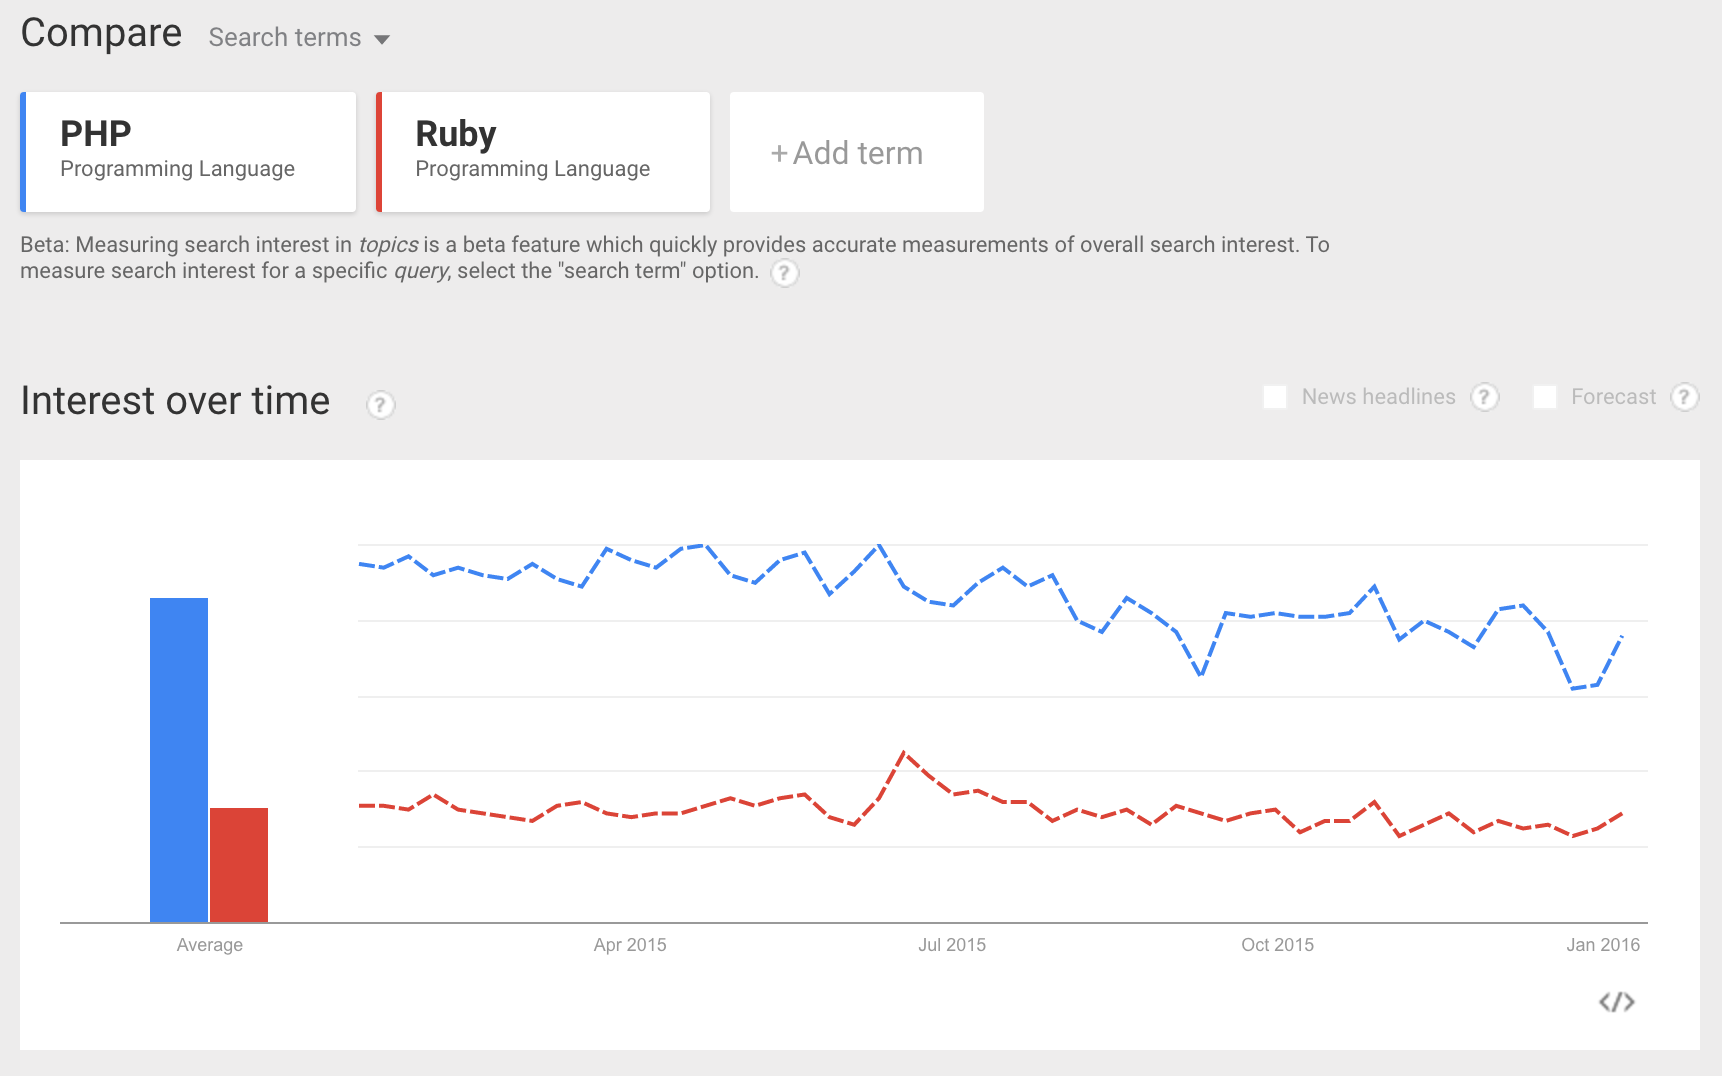 Miami PHP vs Ruby interest over time